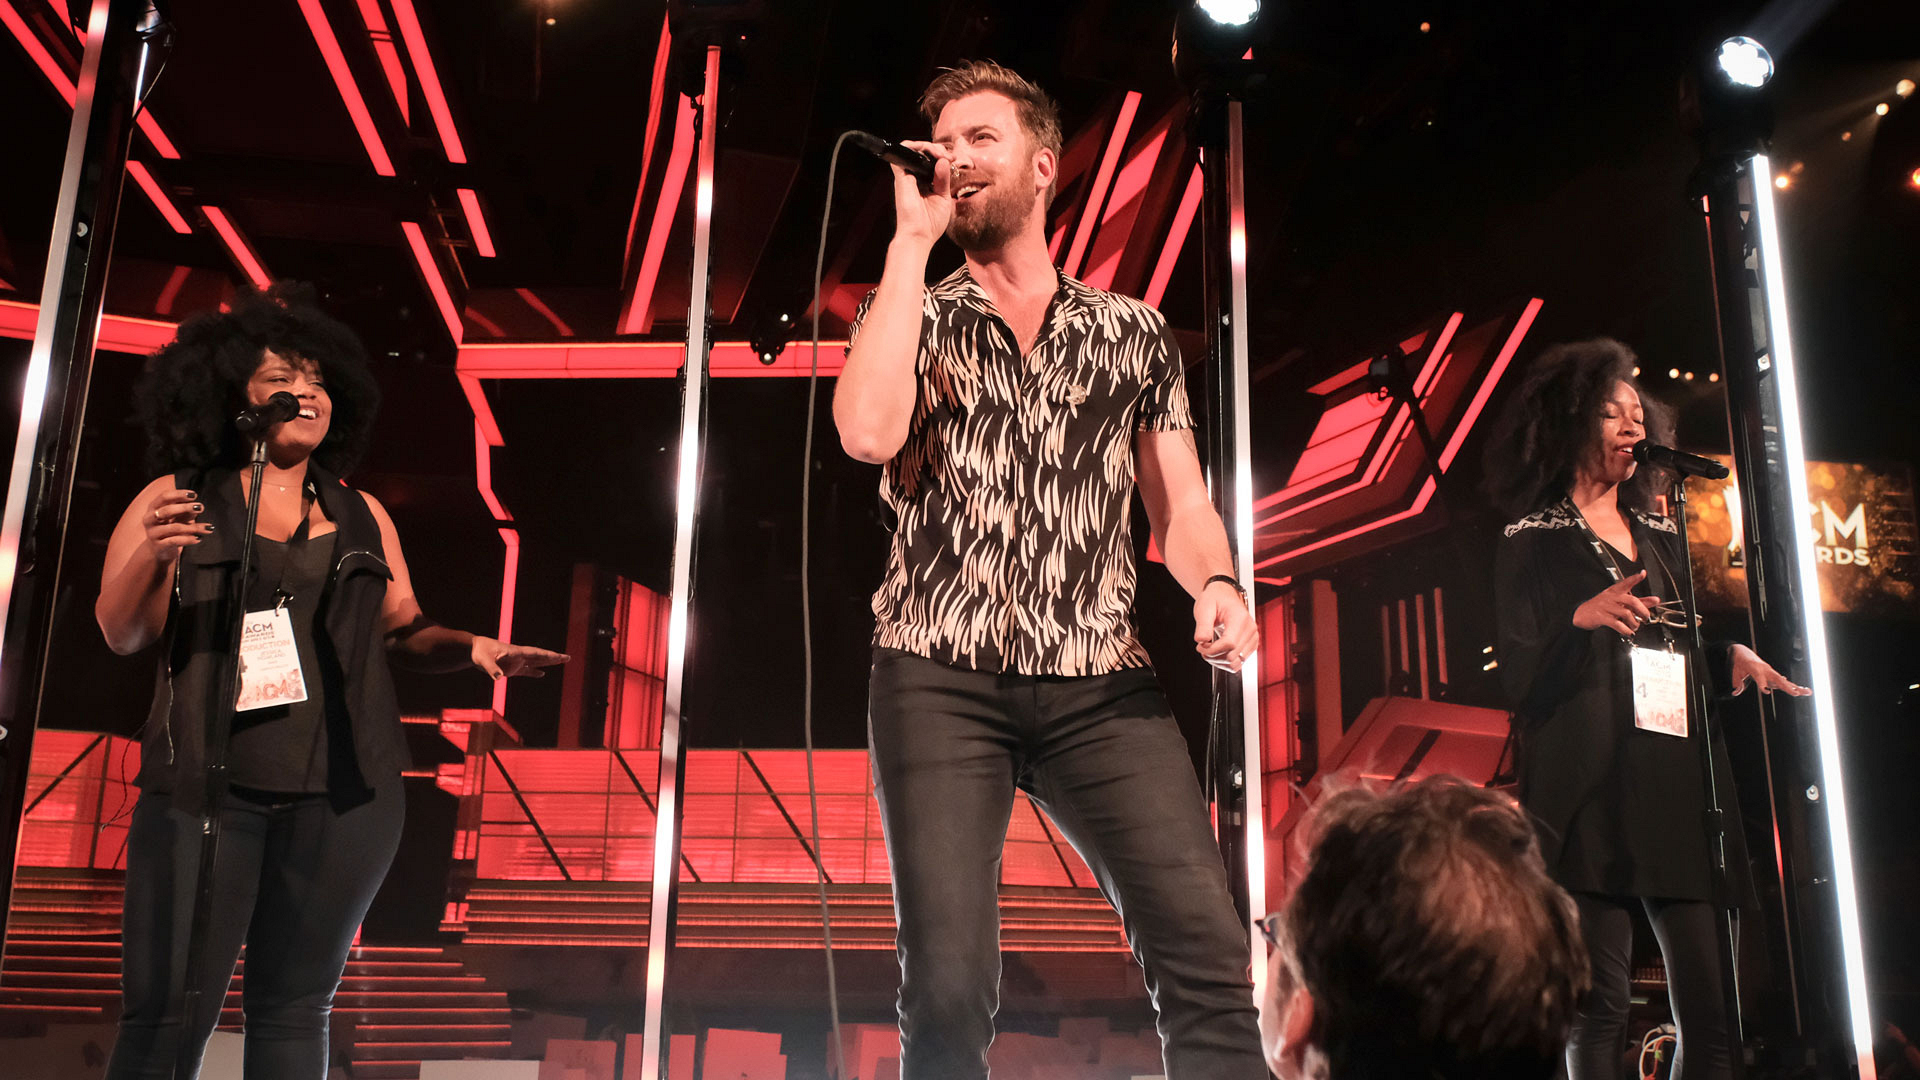 Charles Kelley has a great time while his back-up dancers boogie down behind him.